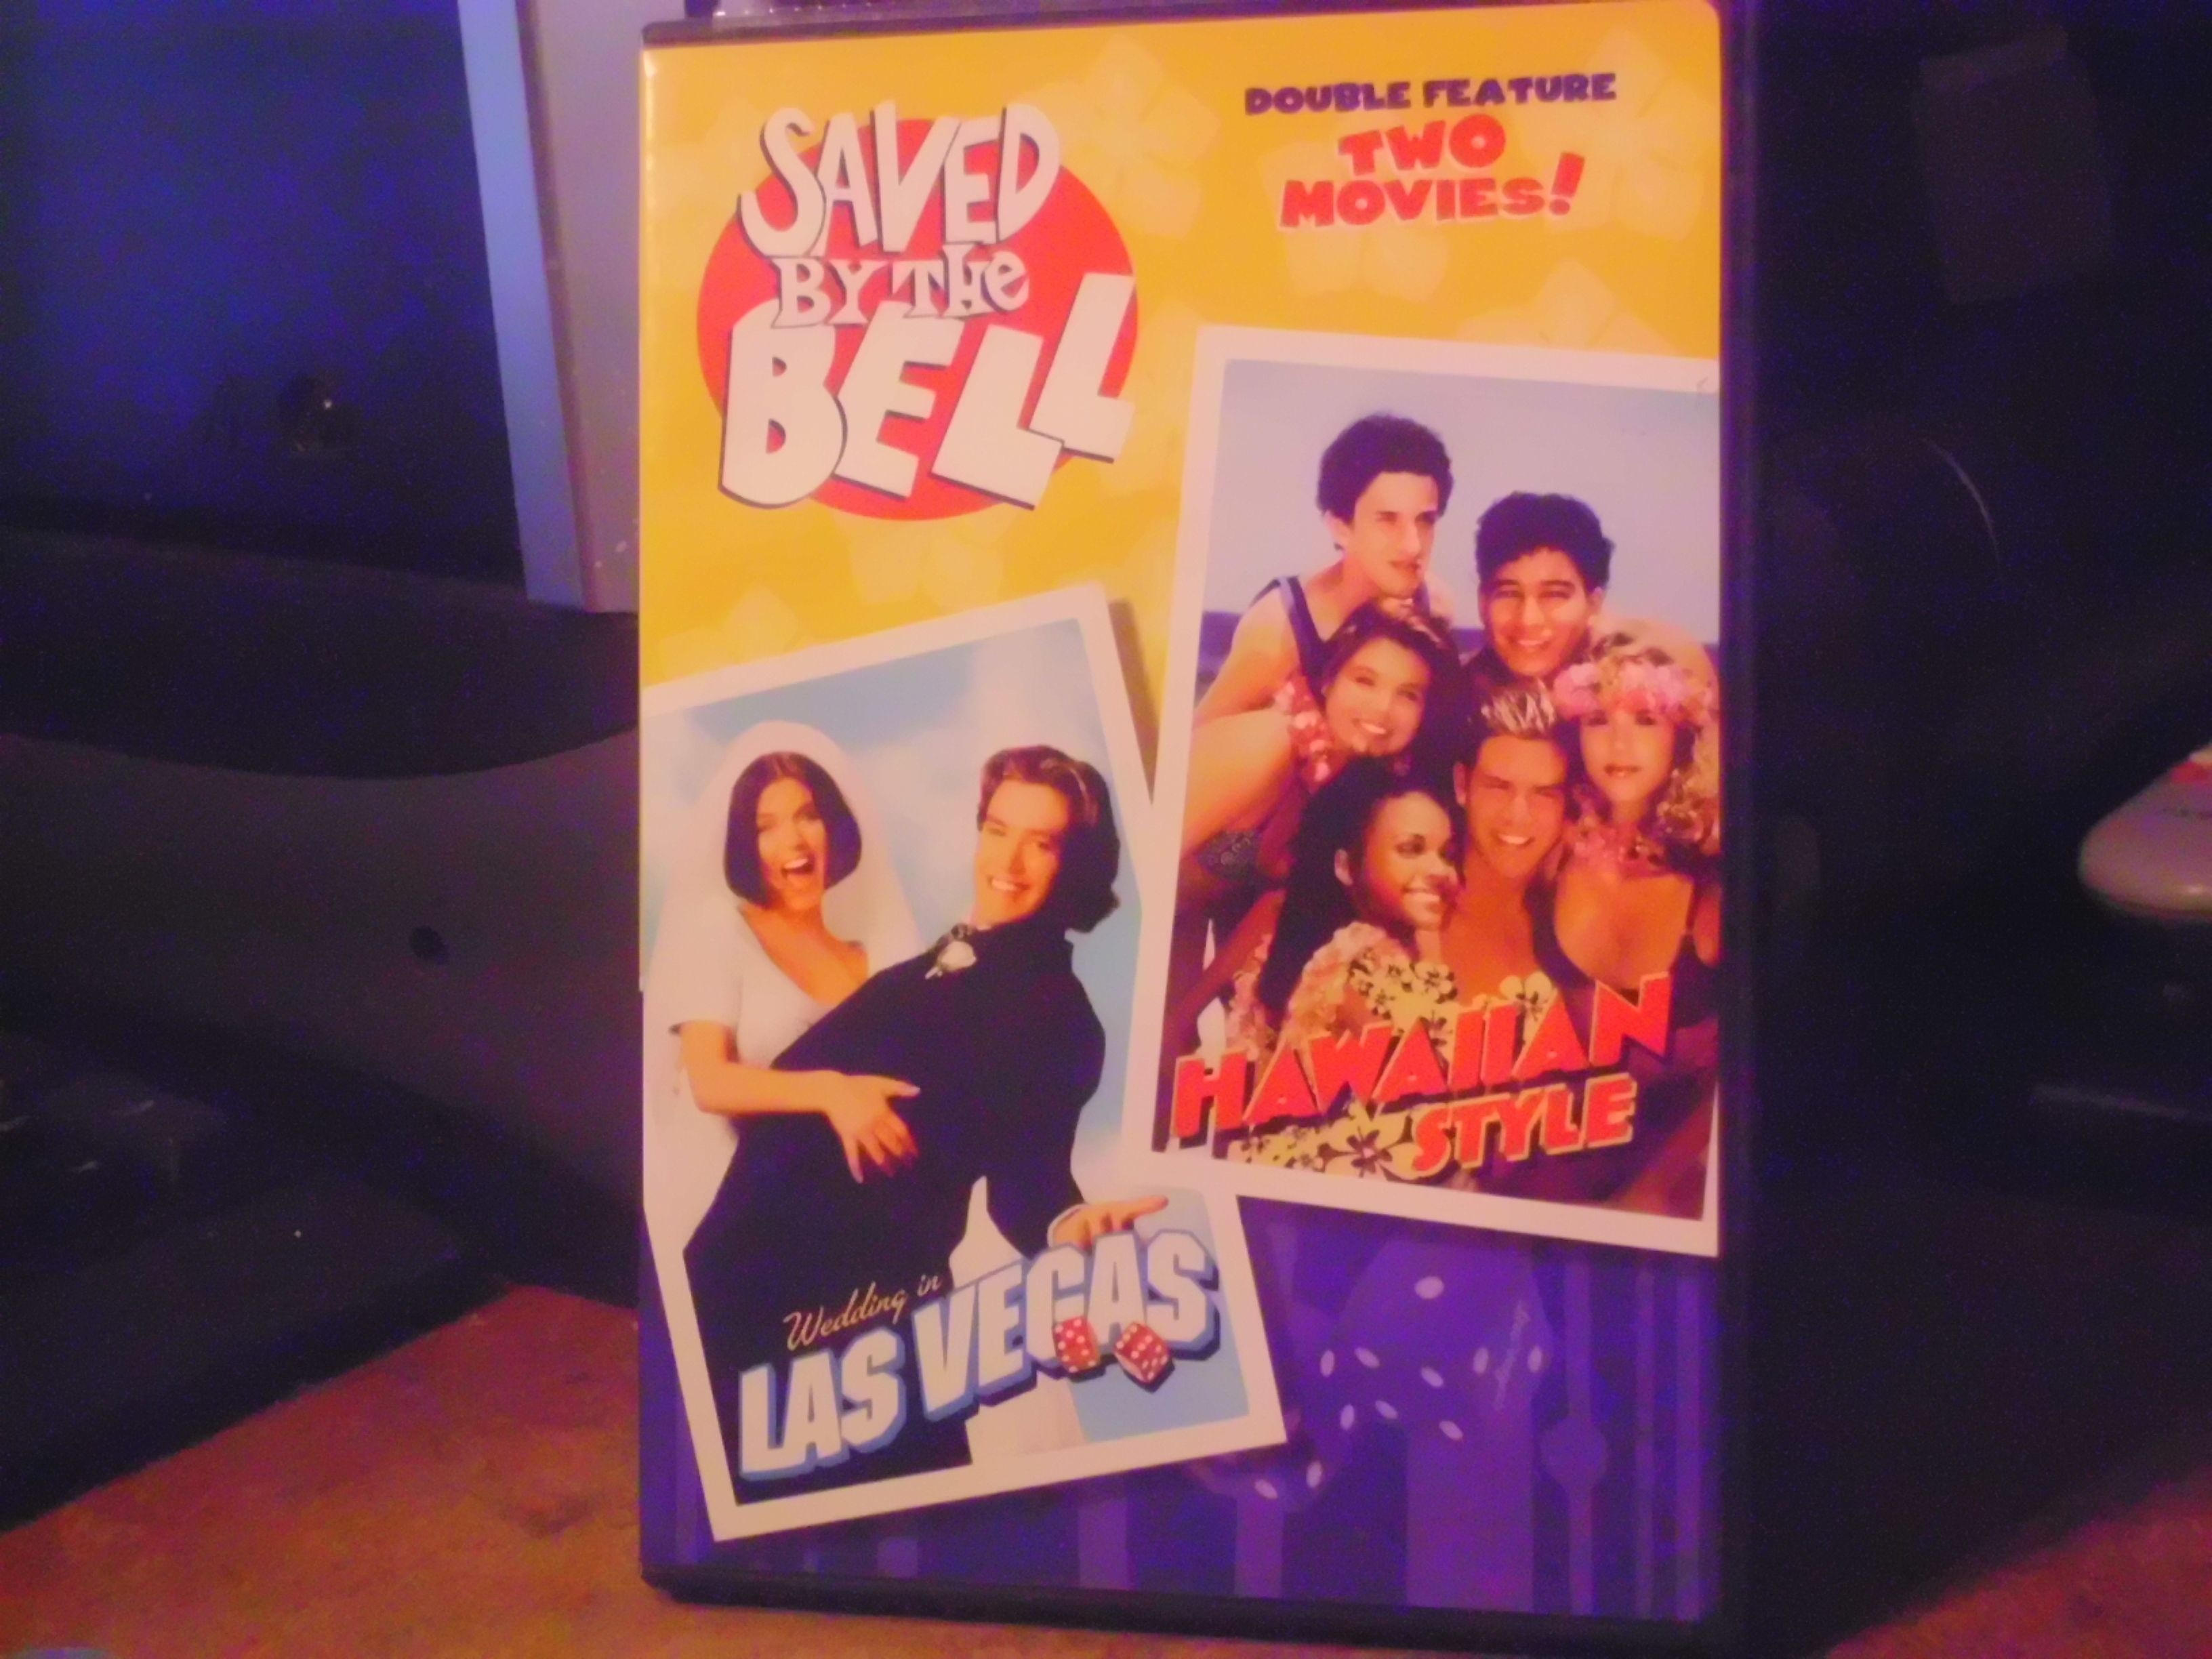 Saved By The Bell Wedding In Las Vegas Hawaiian Style Saved By The Bell Hawaiian Style Las Vegas